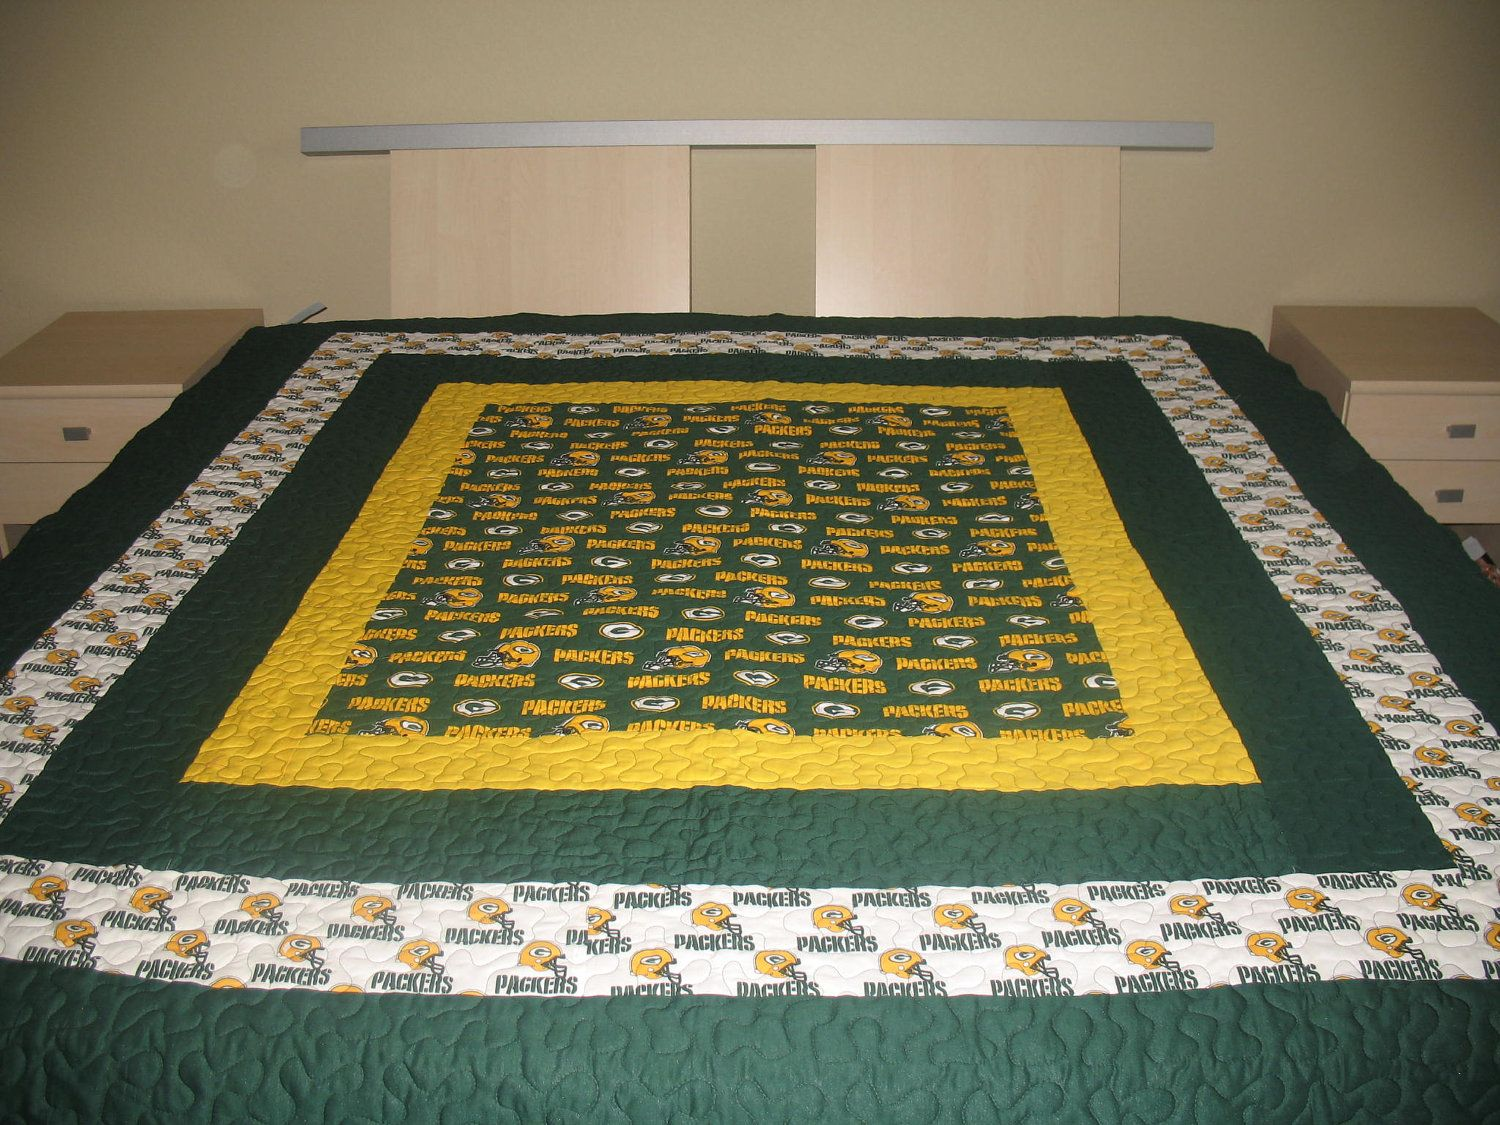 Green Bay Packers Quilt Google Image Result For Http Img0 Etsystatic Com 000 0 6601554 Il Fullxfull 296930116 Jpg Football Quilt Sports Quilts Bear Quilts